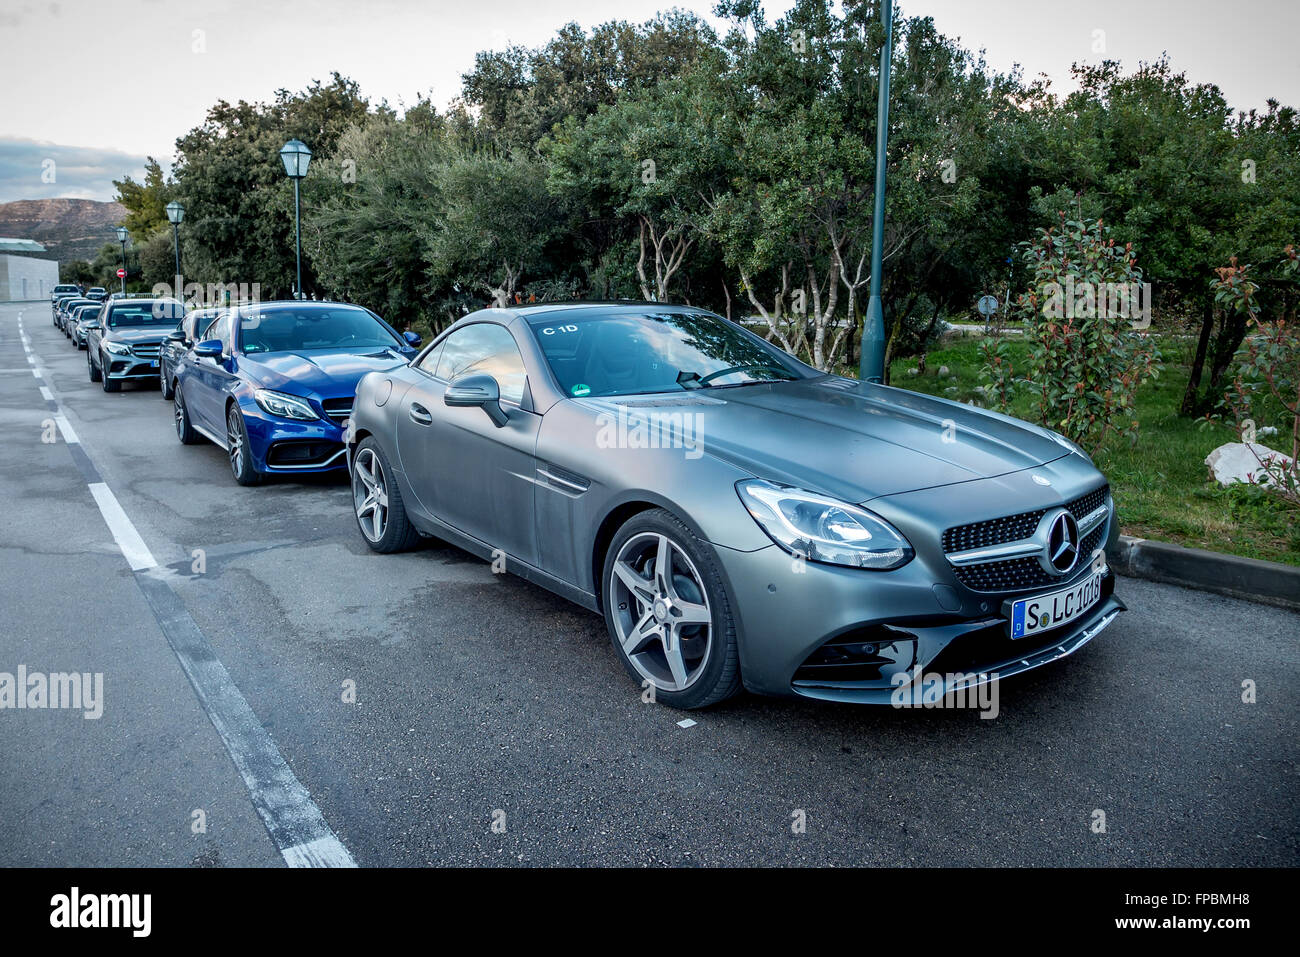 Brand-new Mercedes cars lined up ready for testing near Dubrovnik, on the Dalmatian coast. - Stock Image